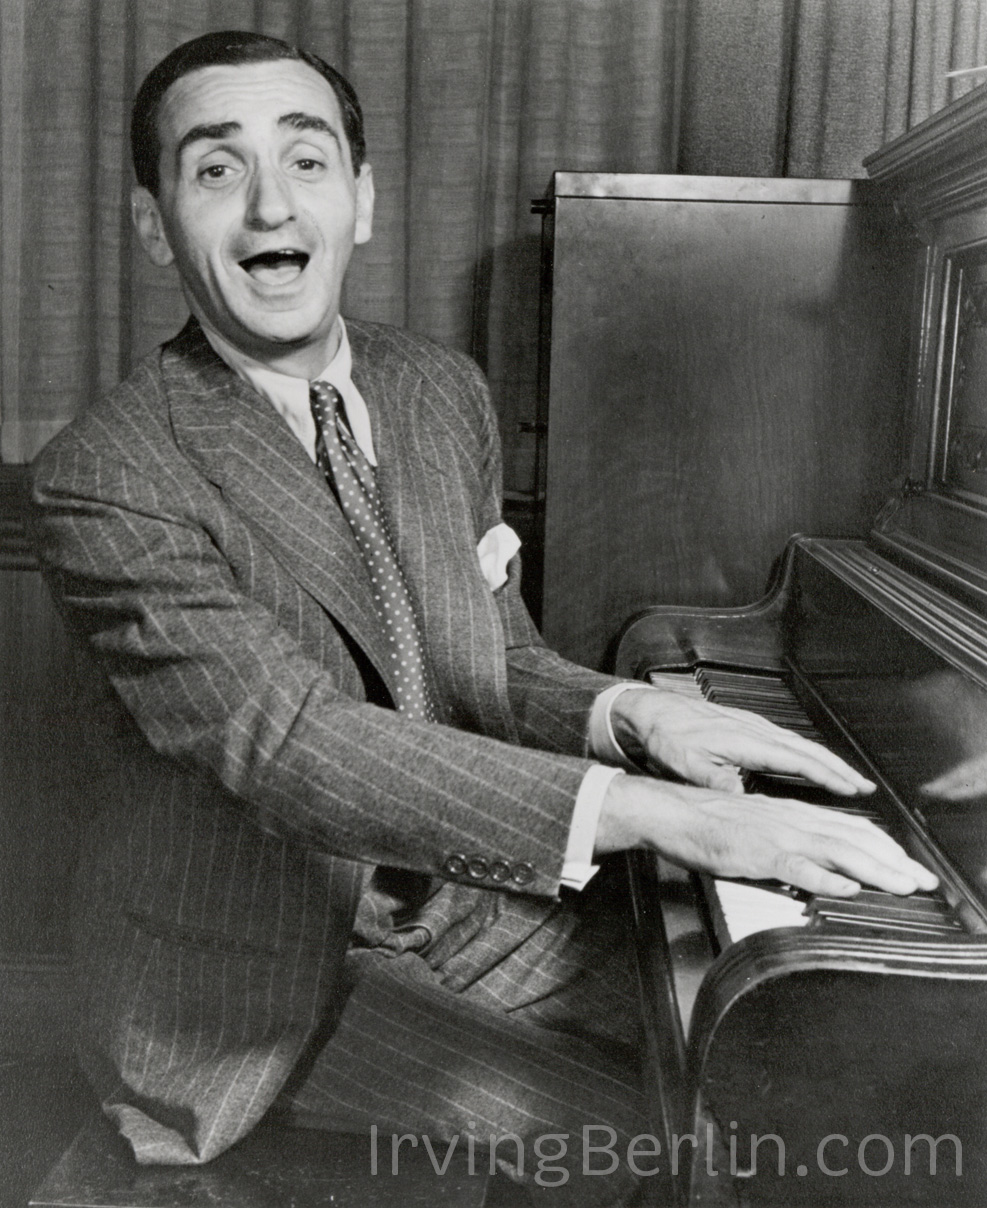 Irving-berlin-piano1.jpg